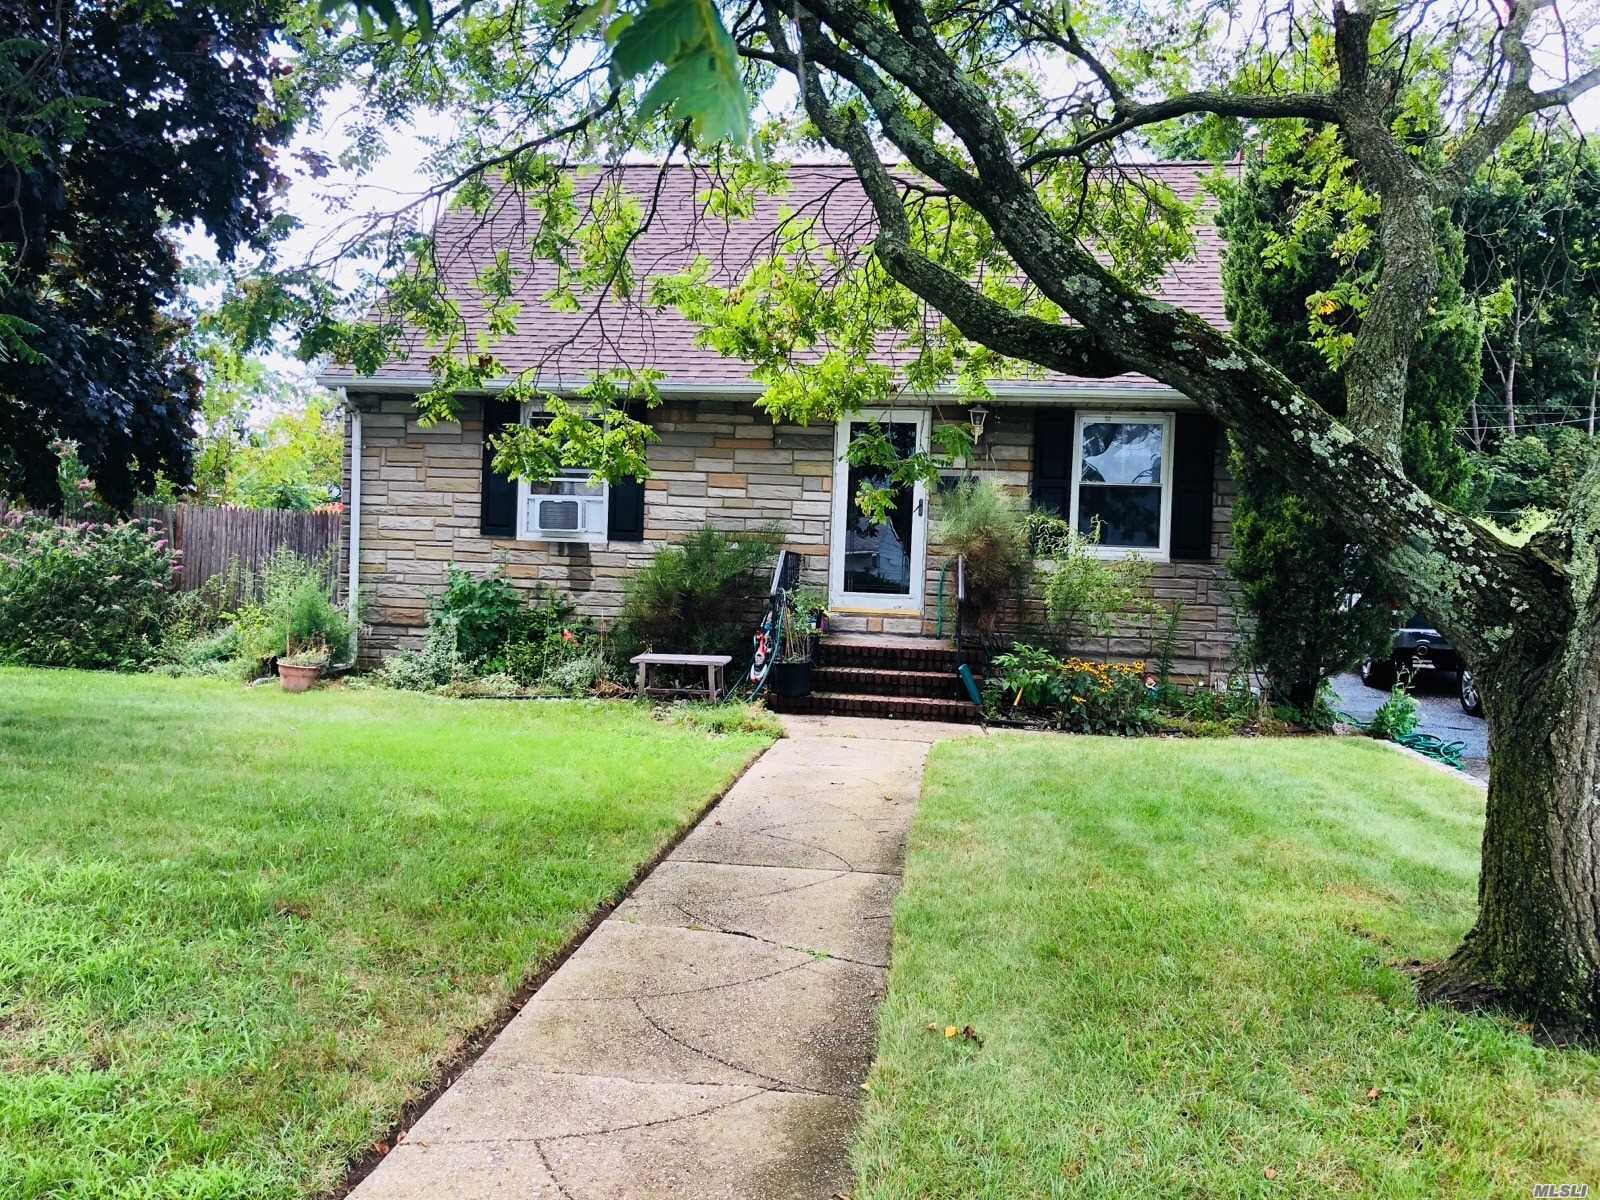 Double Lot Expanded Cape W 4Br, Hardwood Floors Through Out, Eik W Granite Counter Top, Ss Apl, All Year Florida Rm 20X24. Master On Main Floor W Jacuzzi Bath/Sep Shower. Full Basement W Full Bath And Outside Entrance, Possible Mother/ Doughter W Proper Permit, Island Tree School.